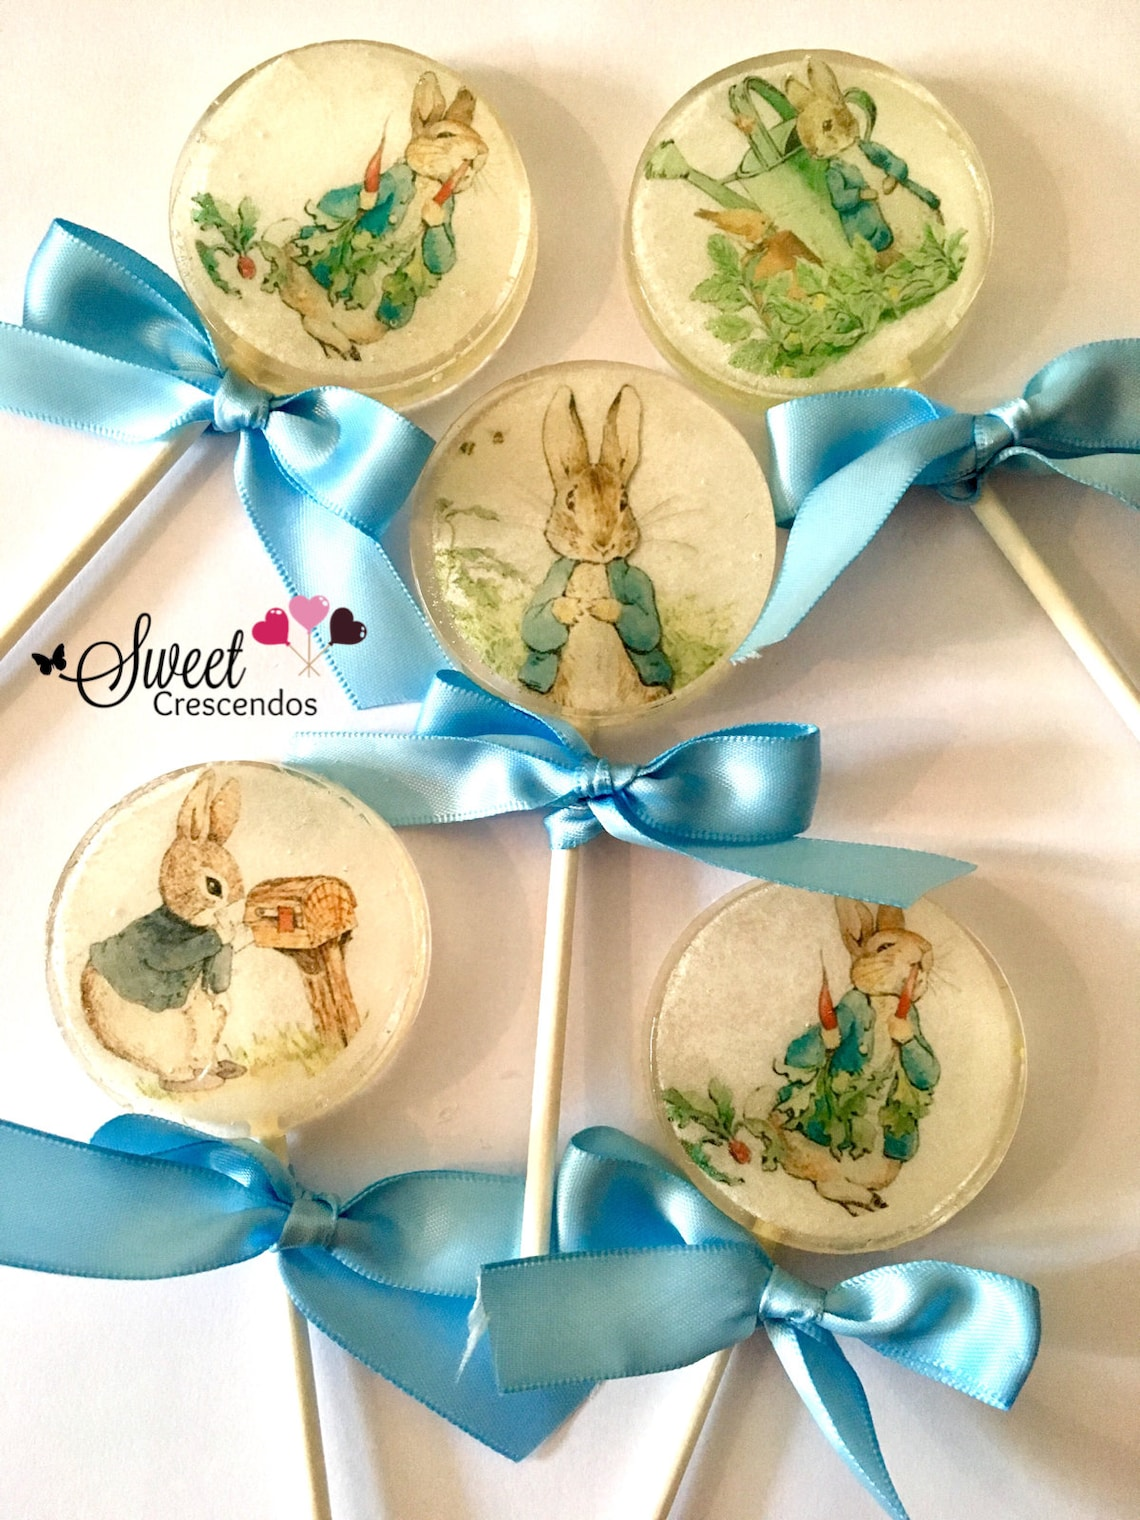 Bunny Rabbit Inspired Lollipop Collection -Hard Candy Lollipops